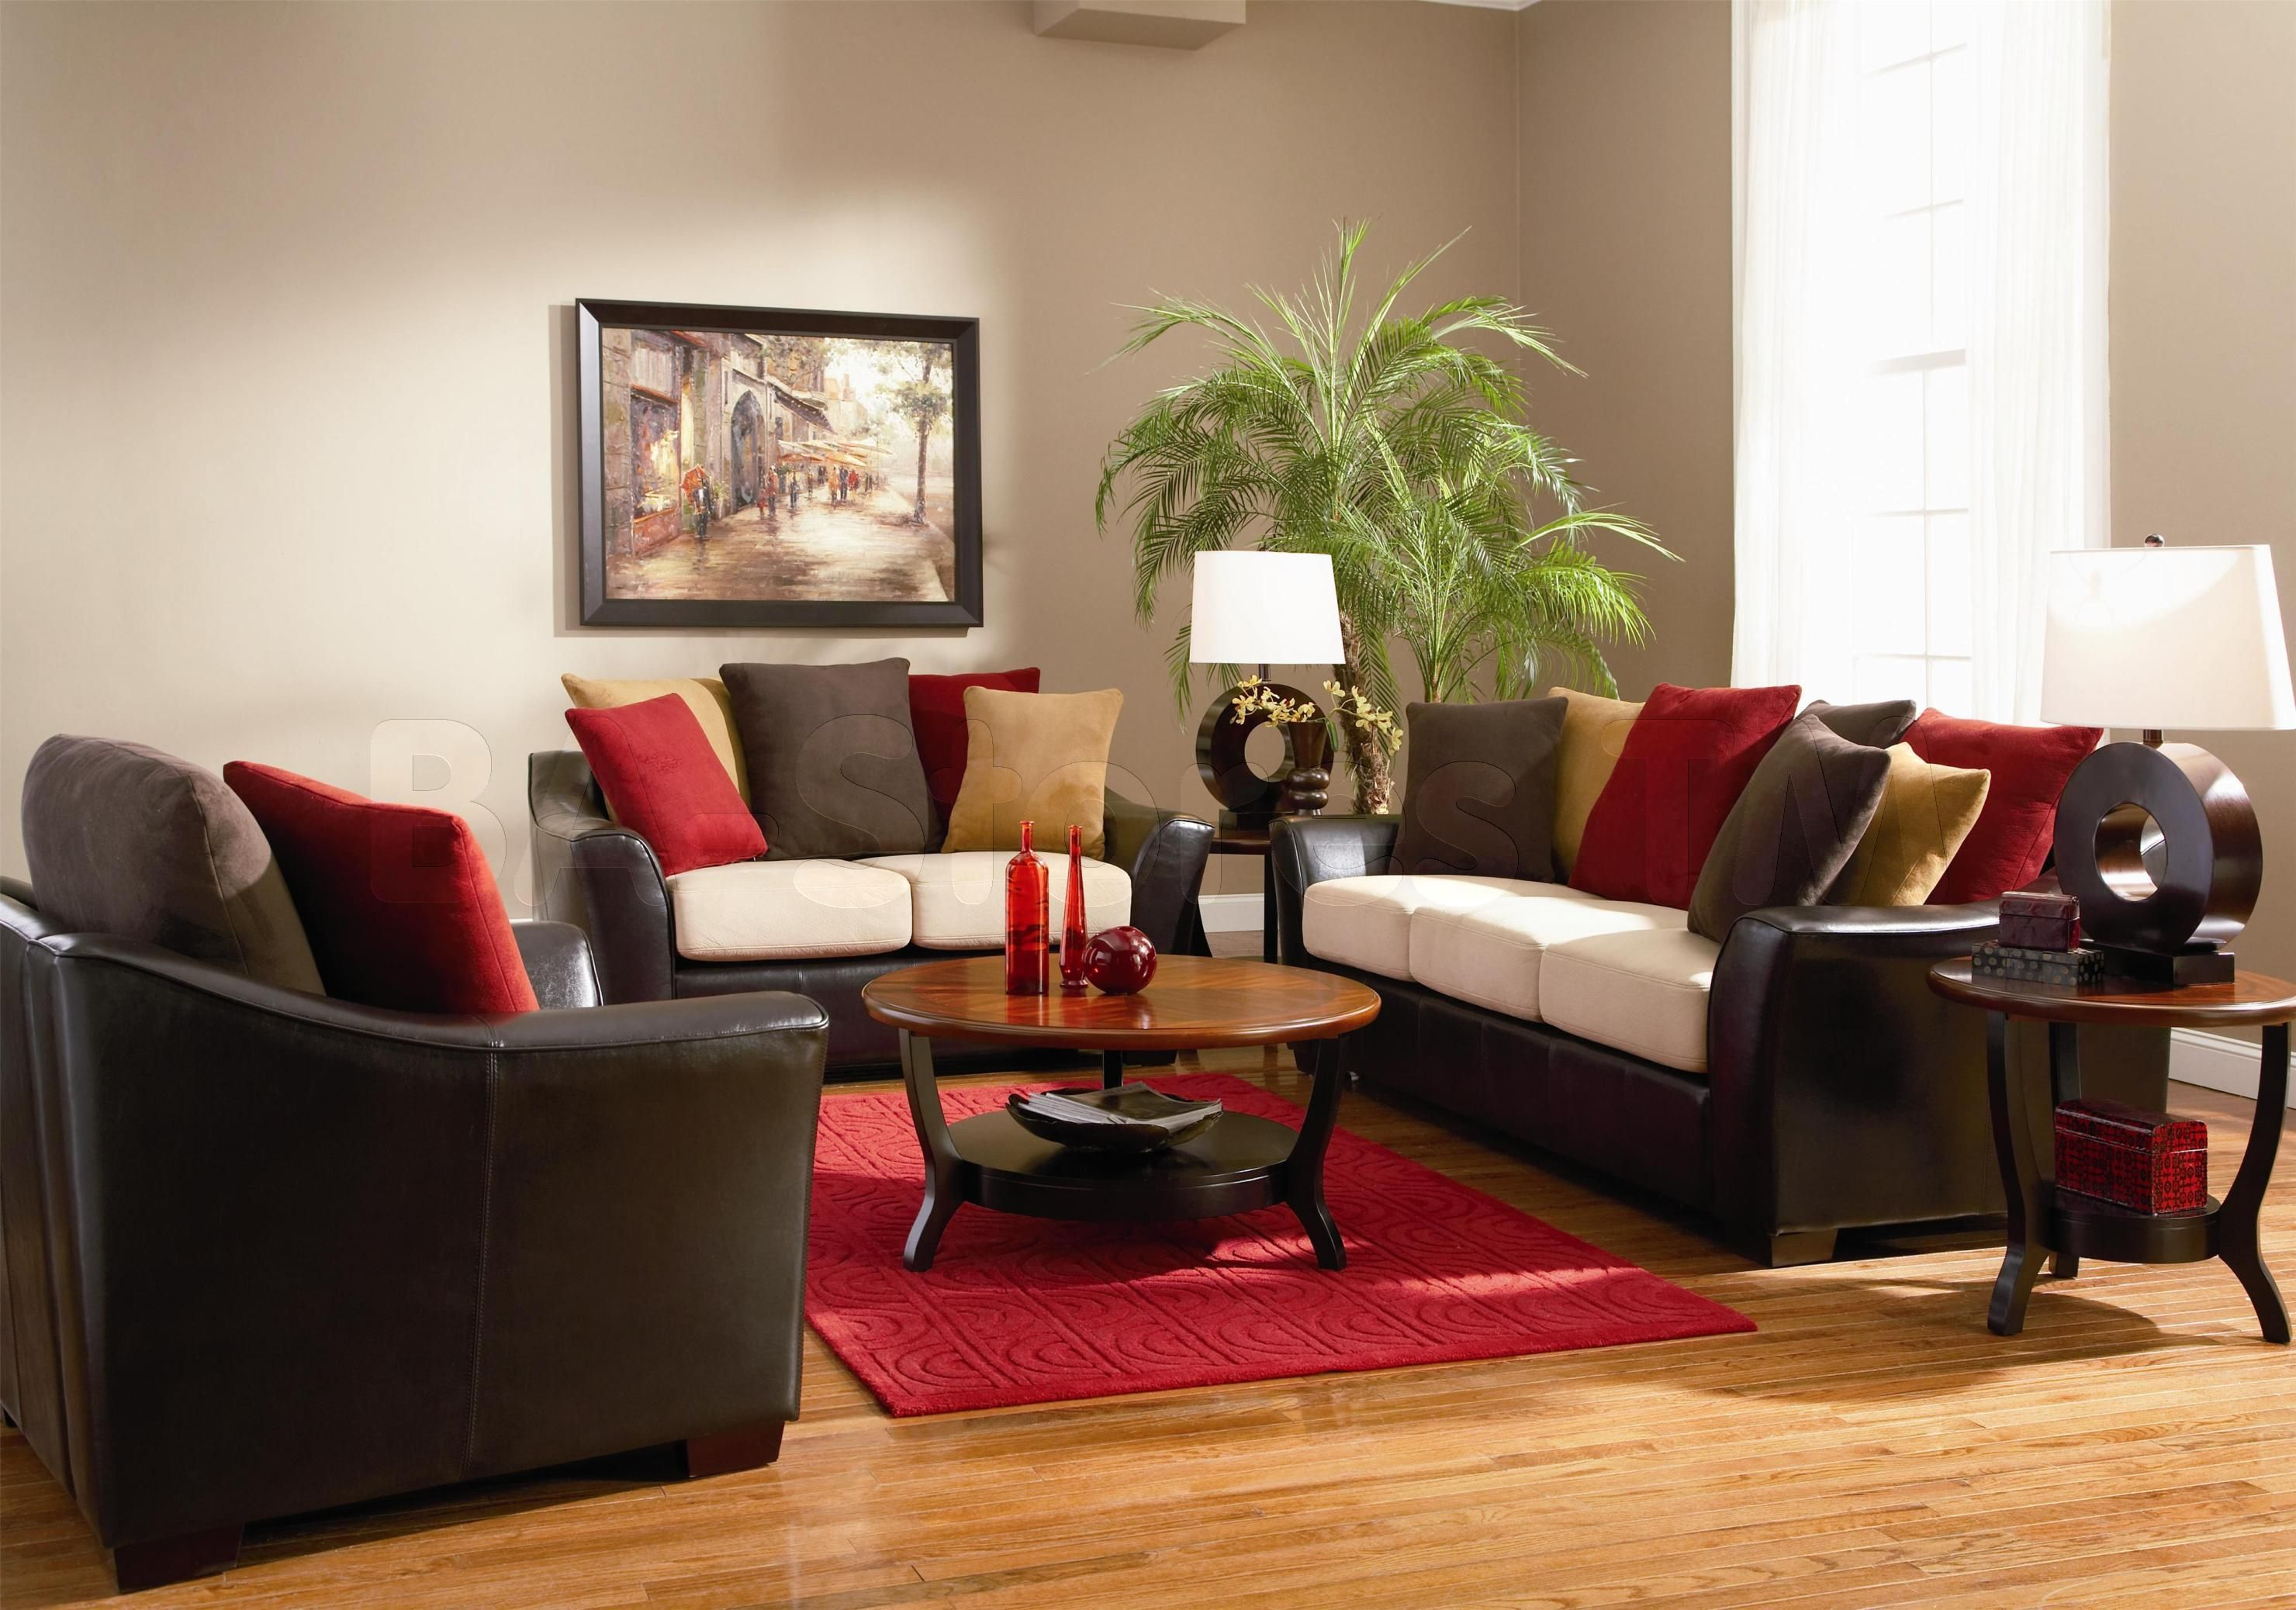 Living Room Ideas With Brown Sofas Living Room Red Living Room Decor Brown Couch Living Room Colors